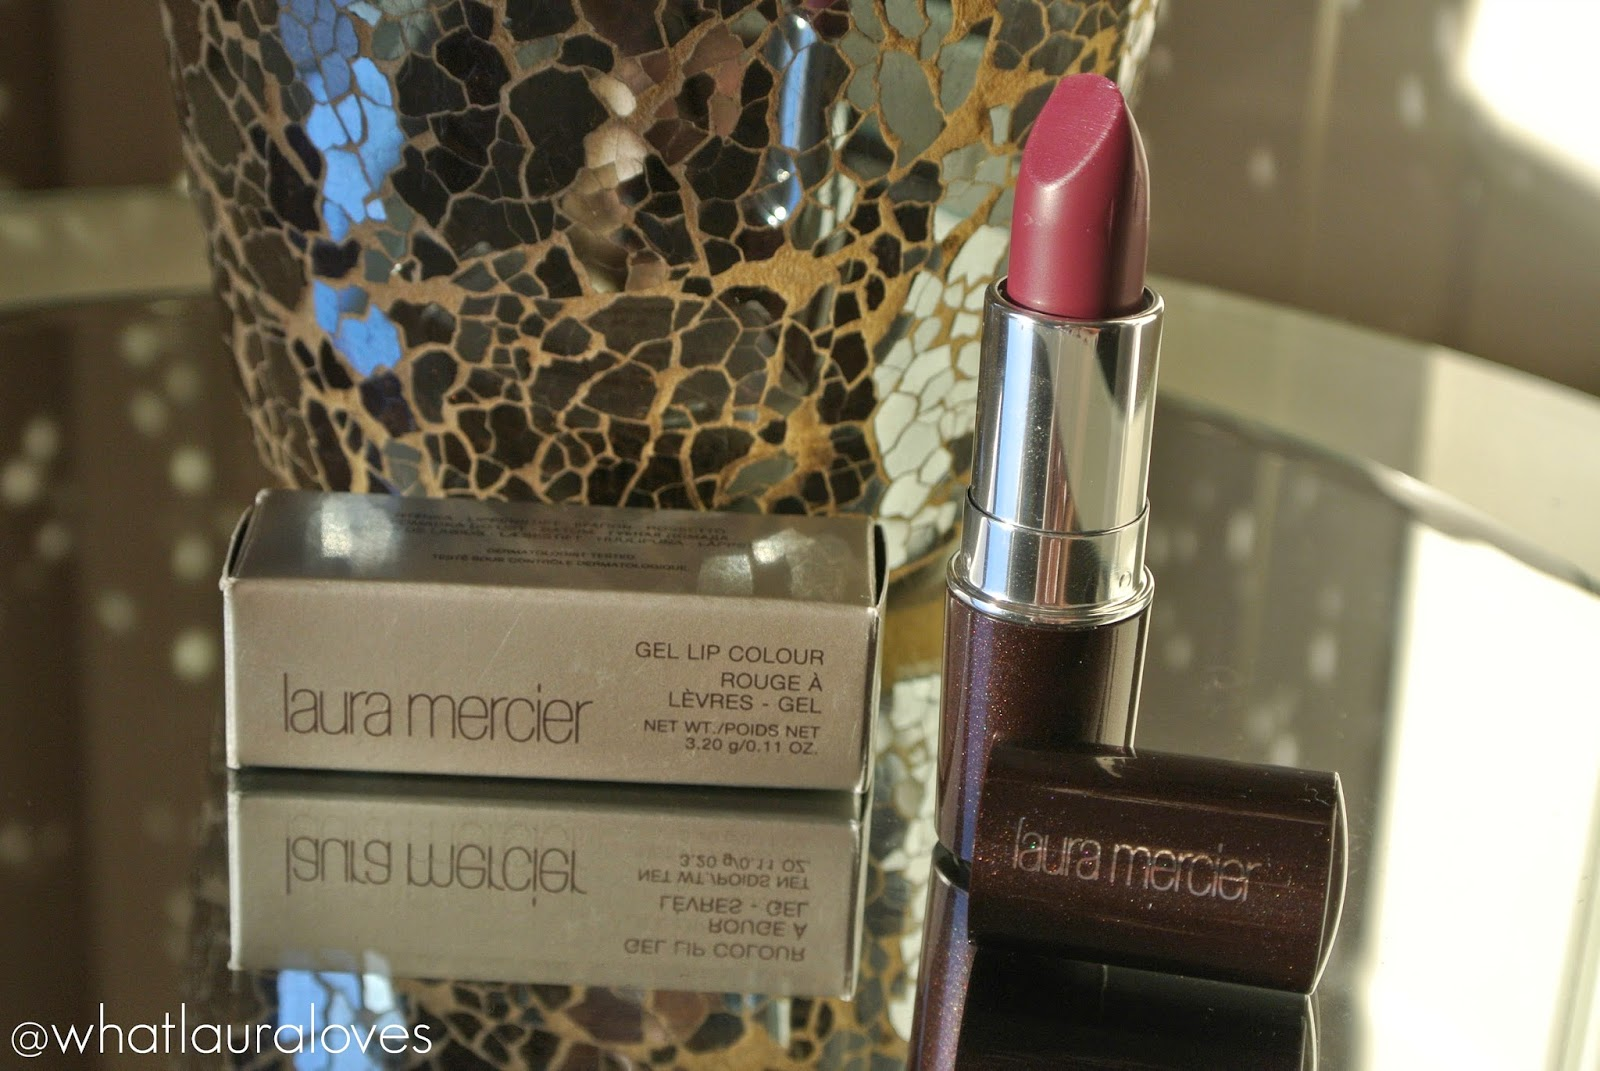 Laura Mercier Gel Lip Colour in Temptation Lipstick Review and Swatches